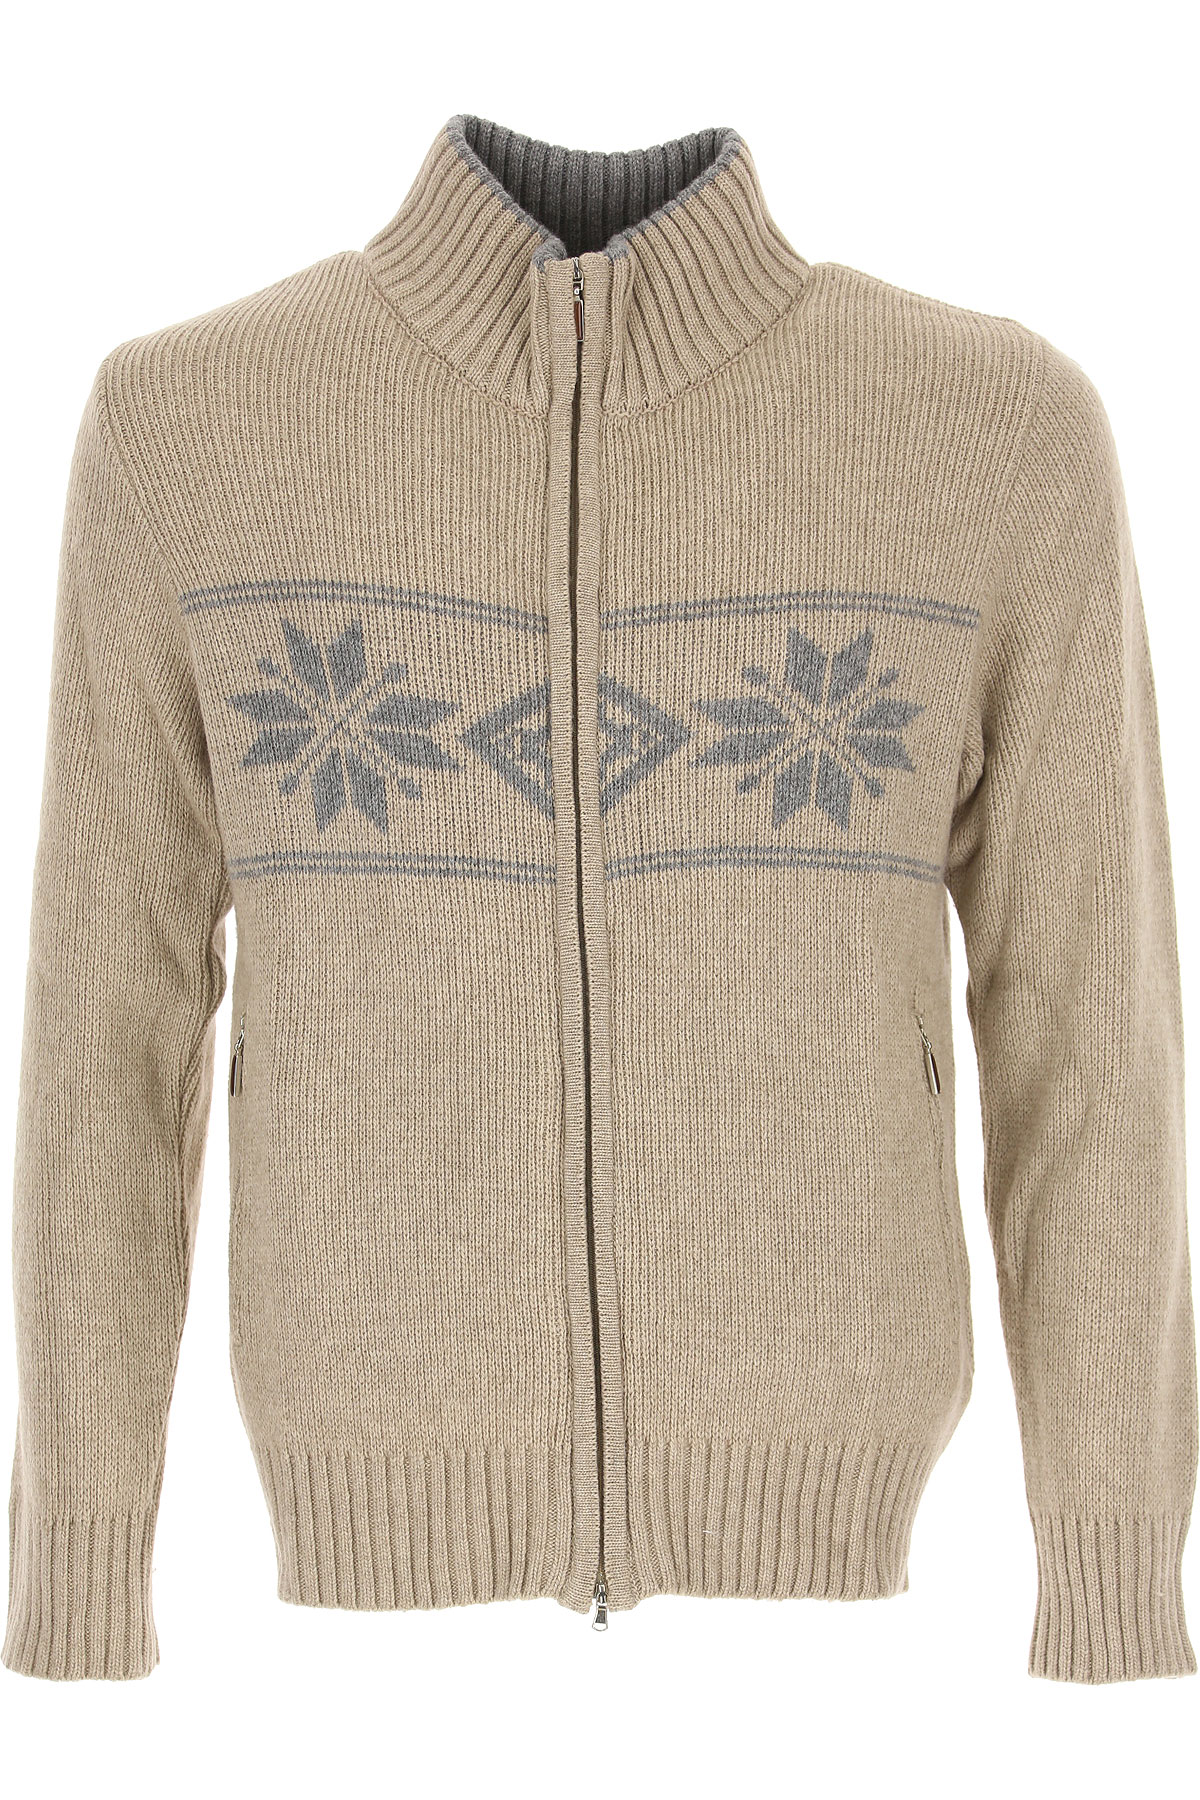 Alberto Vico Sweater for Men Jumper On Sale in Outlet, Sand, Merinos Wool, 2019, M XL